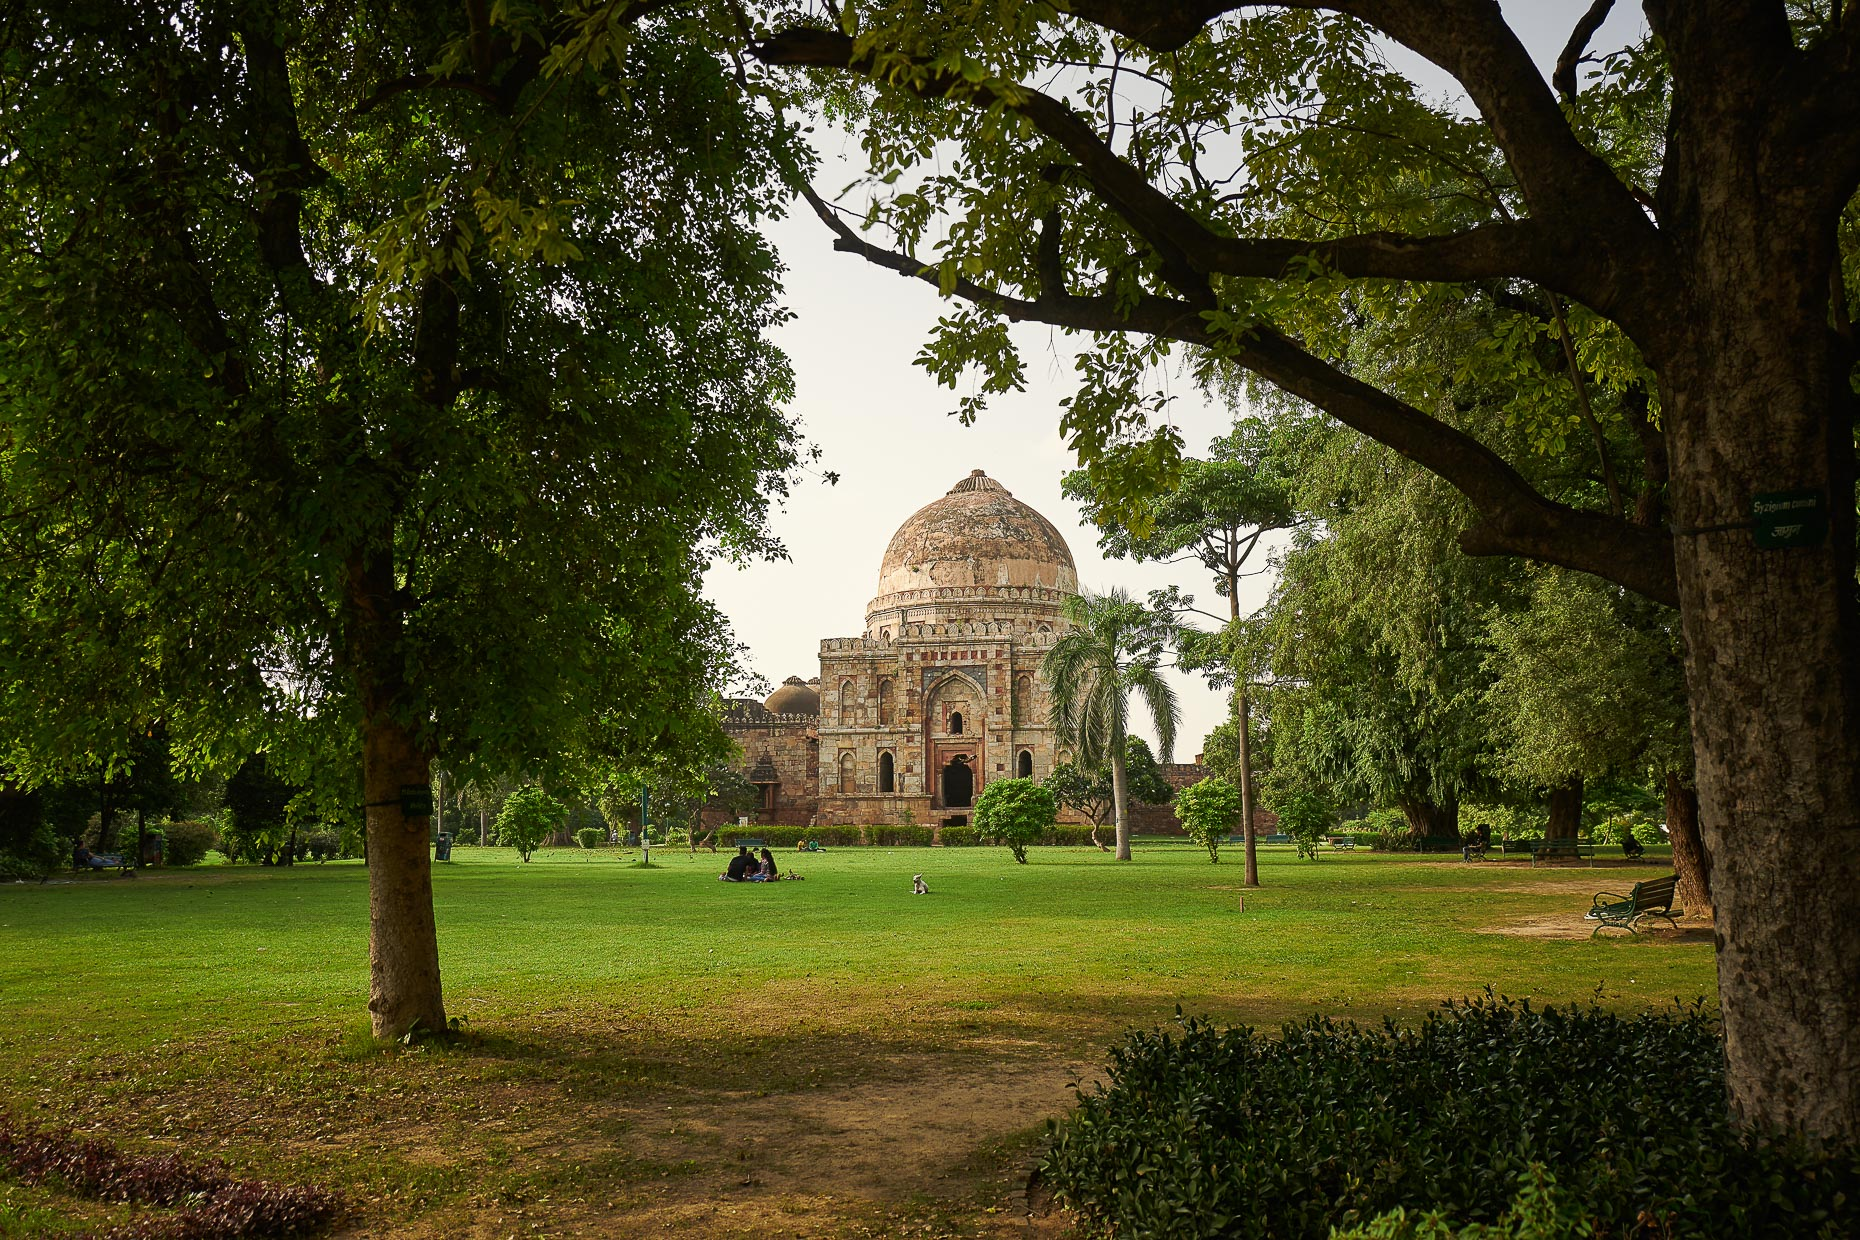 Personal_India_agra_L1030932-20